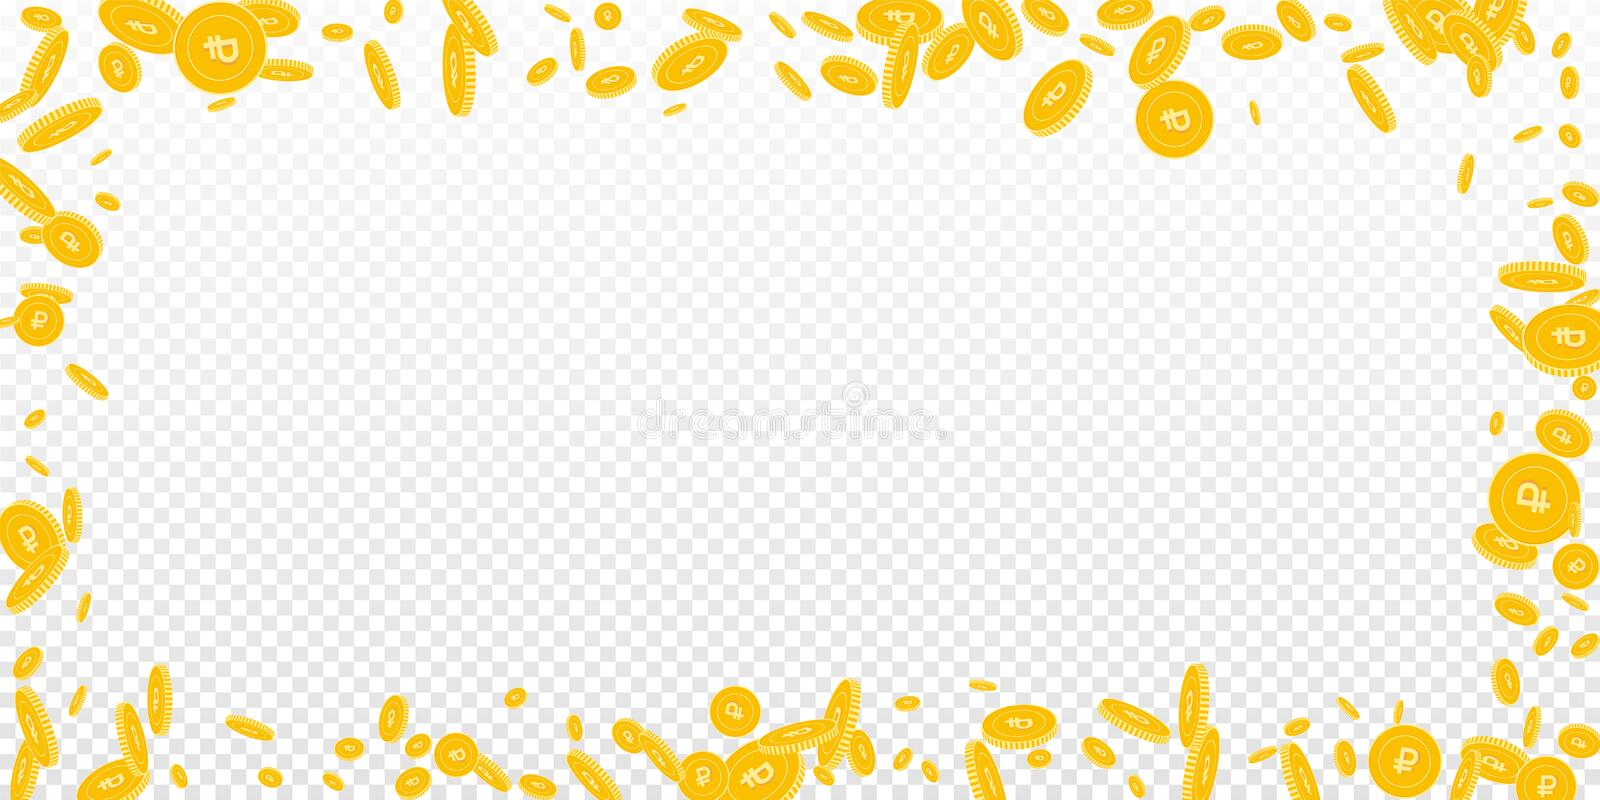 Russian ruble coins falling. Scattered disorderly. RUB coins on transparent background. Fabulous wide scattered frame vector illustration. Jackpot or success vector illustration